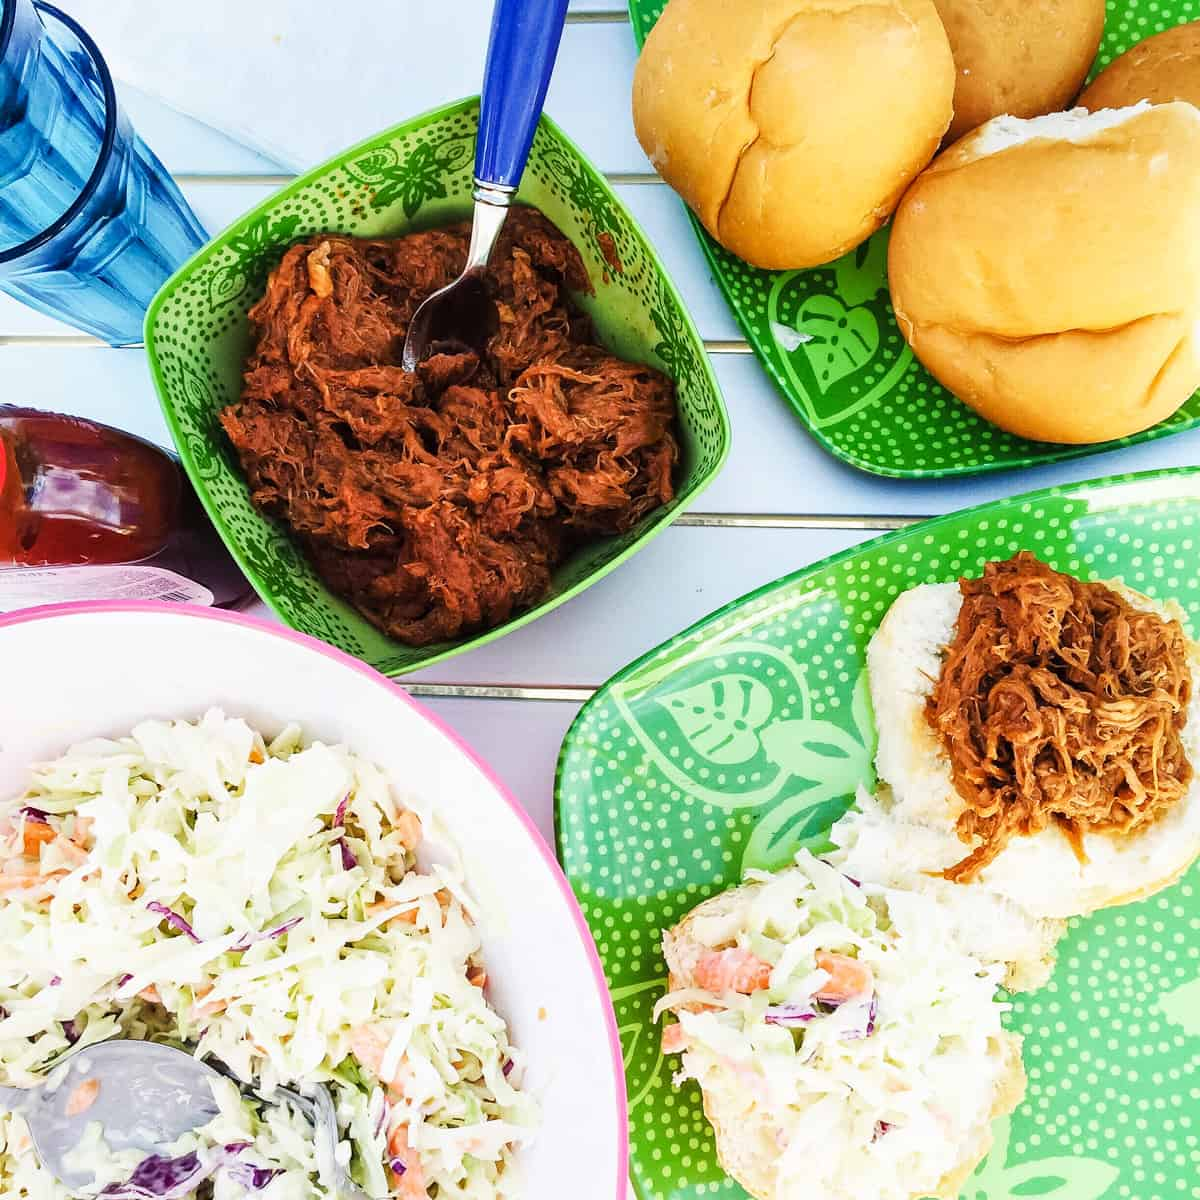 a top down view of an outdoor dinner table with a pulled pork dinner. there is a bowl of pulled pork, a bowl of coleslaw, a plate of buns